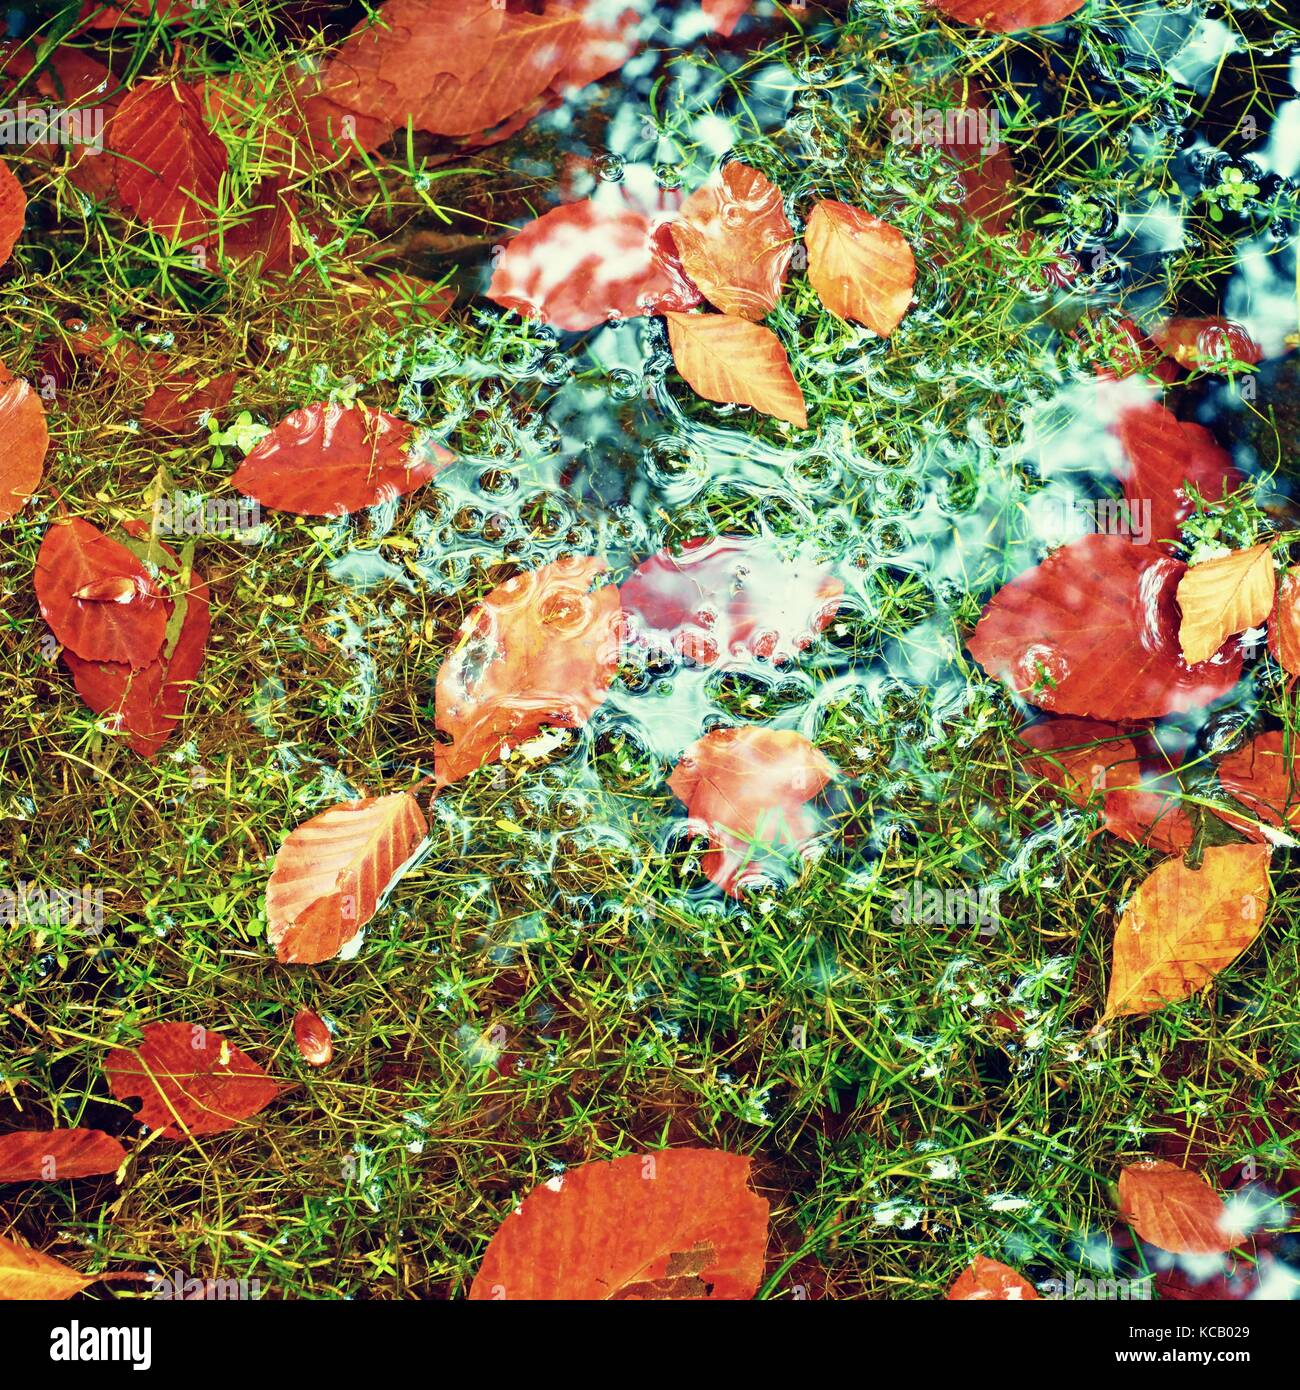 Algae with caught fallen  leaves  on basalt gravel in mirrored water of mountain stream. Vivid colorful leaves  - Stock Image